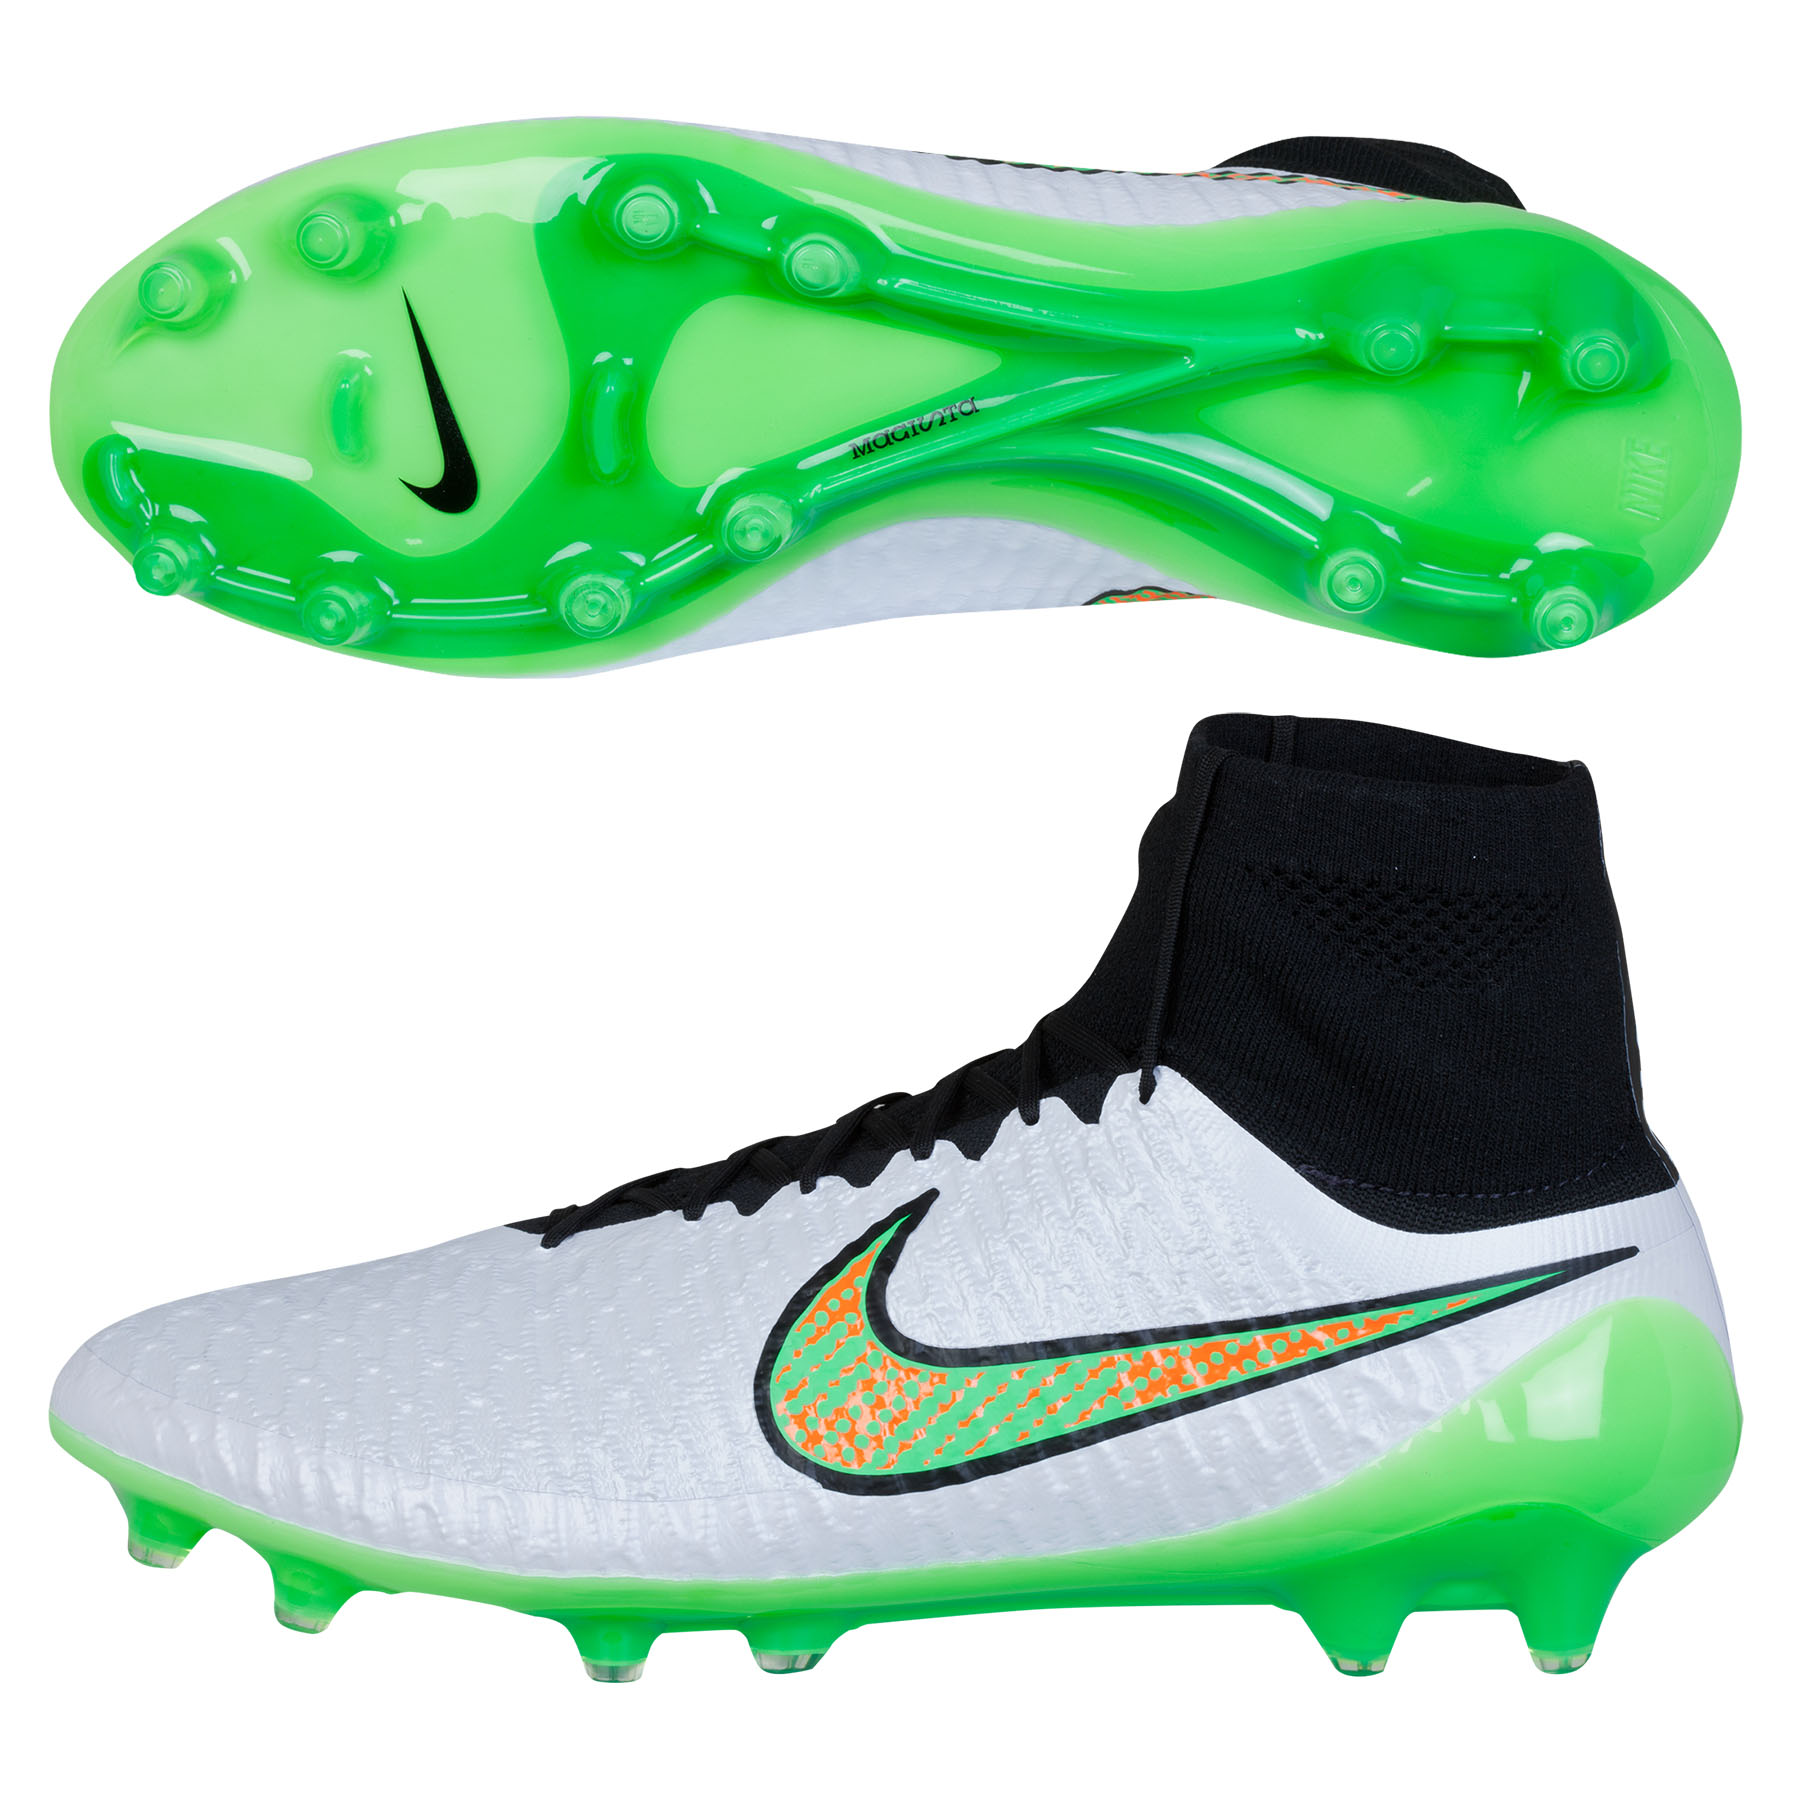 Nike Magista Obra Firm Ground Football Boots White